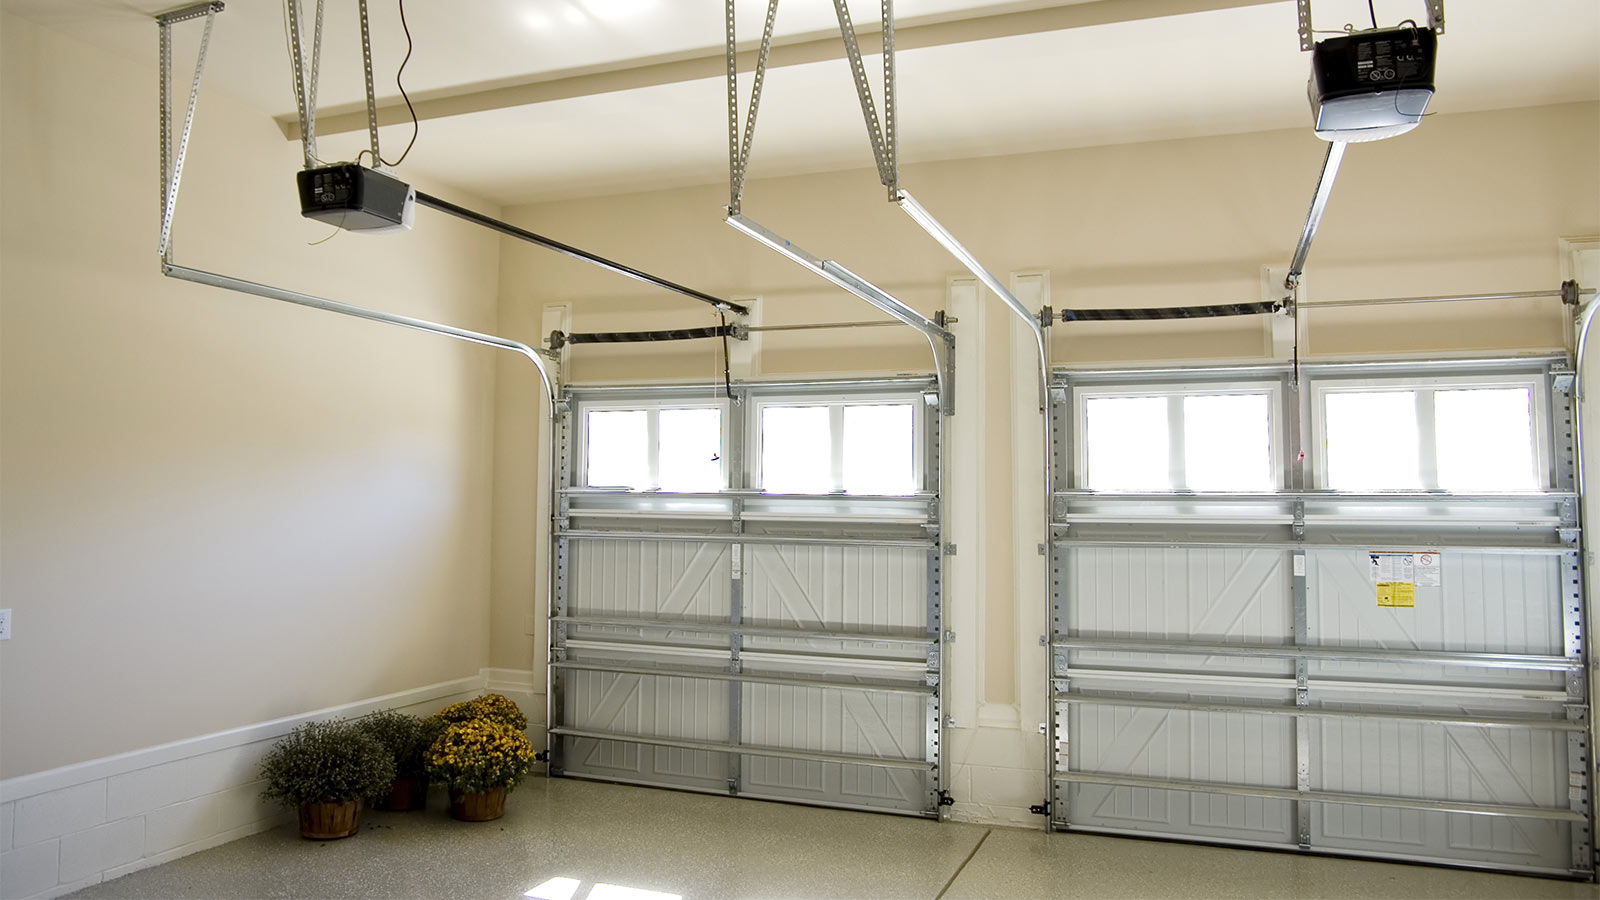 Sectional Garage Doors from Sectional Garage Doors Basildon suppliers.